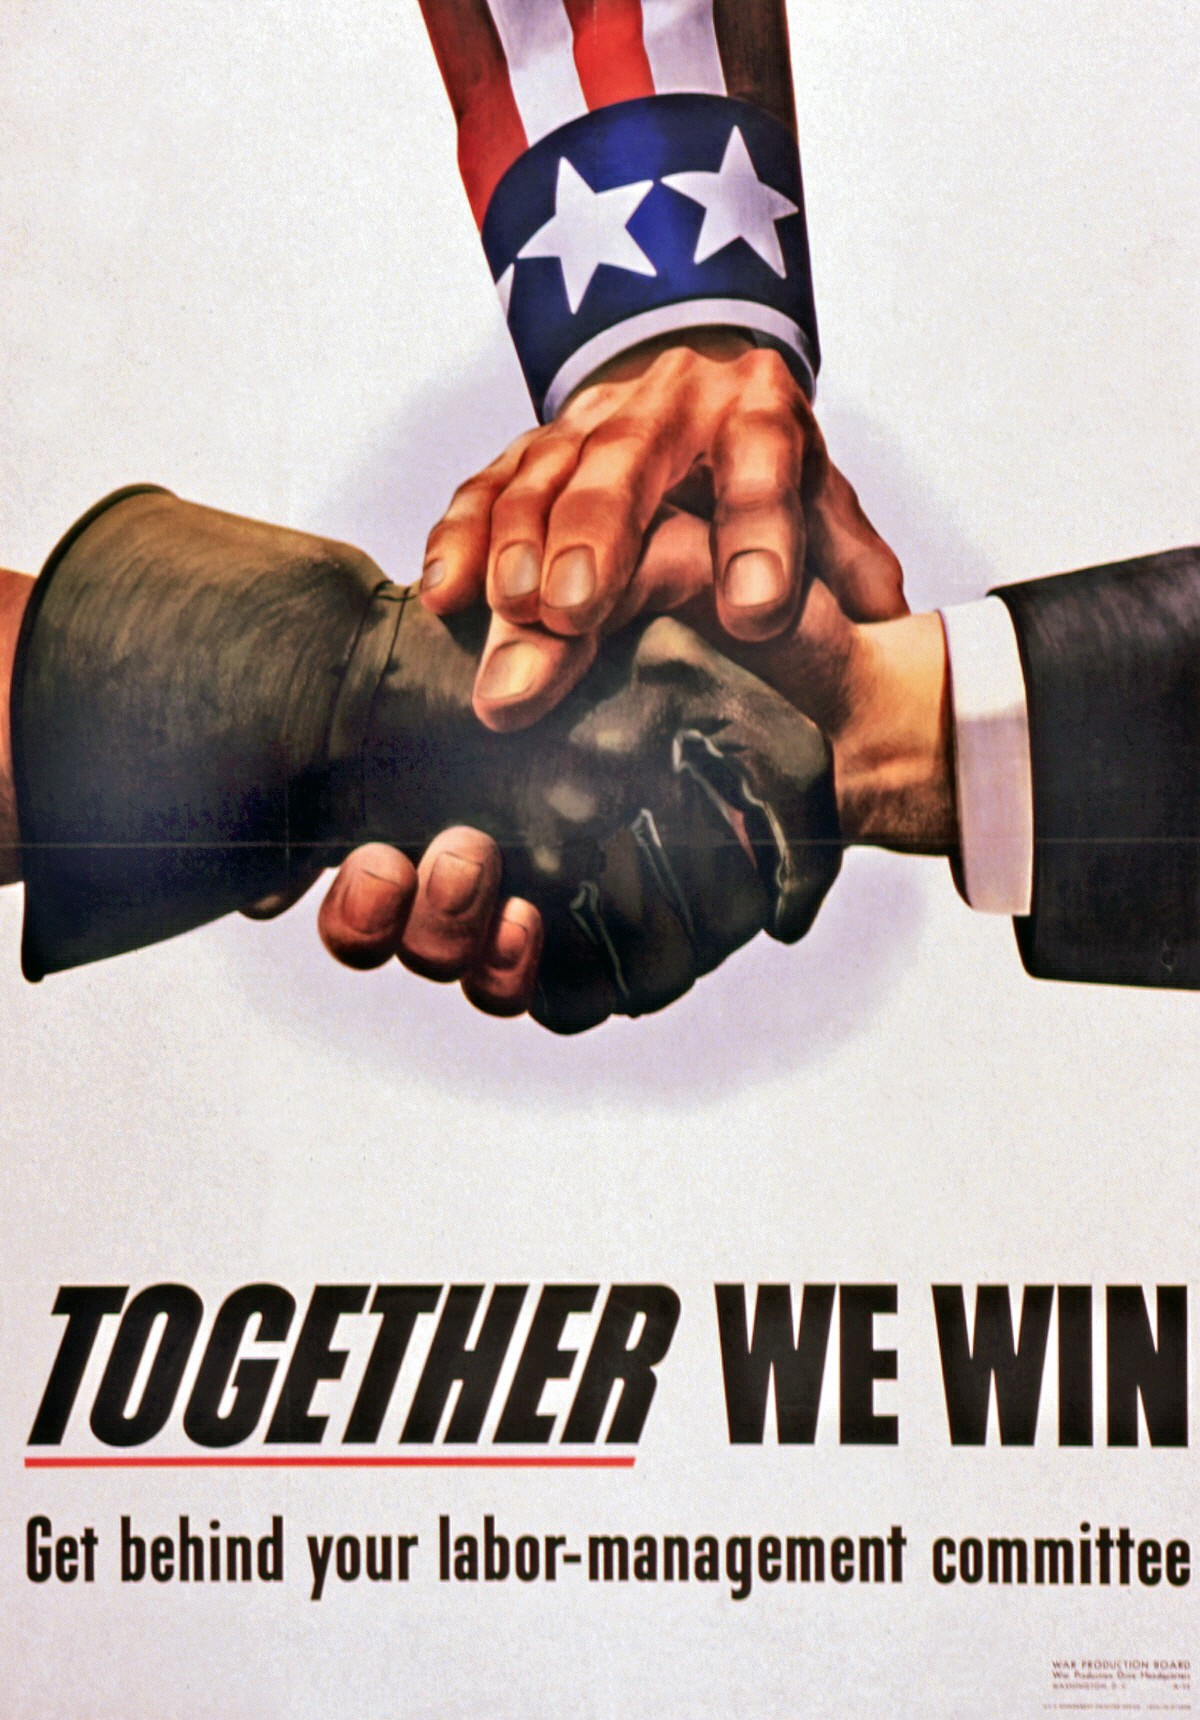 00 Unknown Artist. Together we win. ca 1942-3